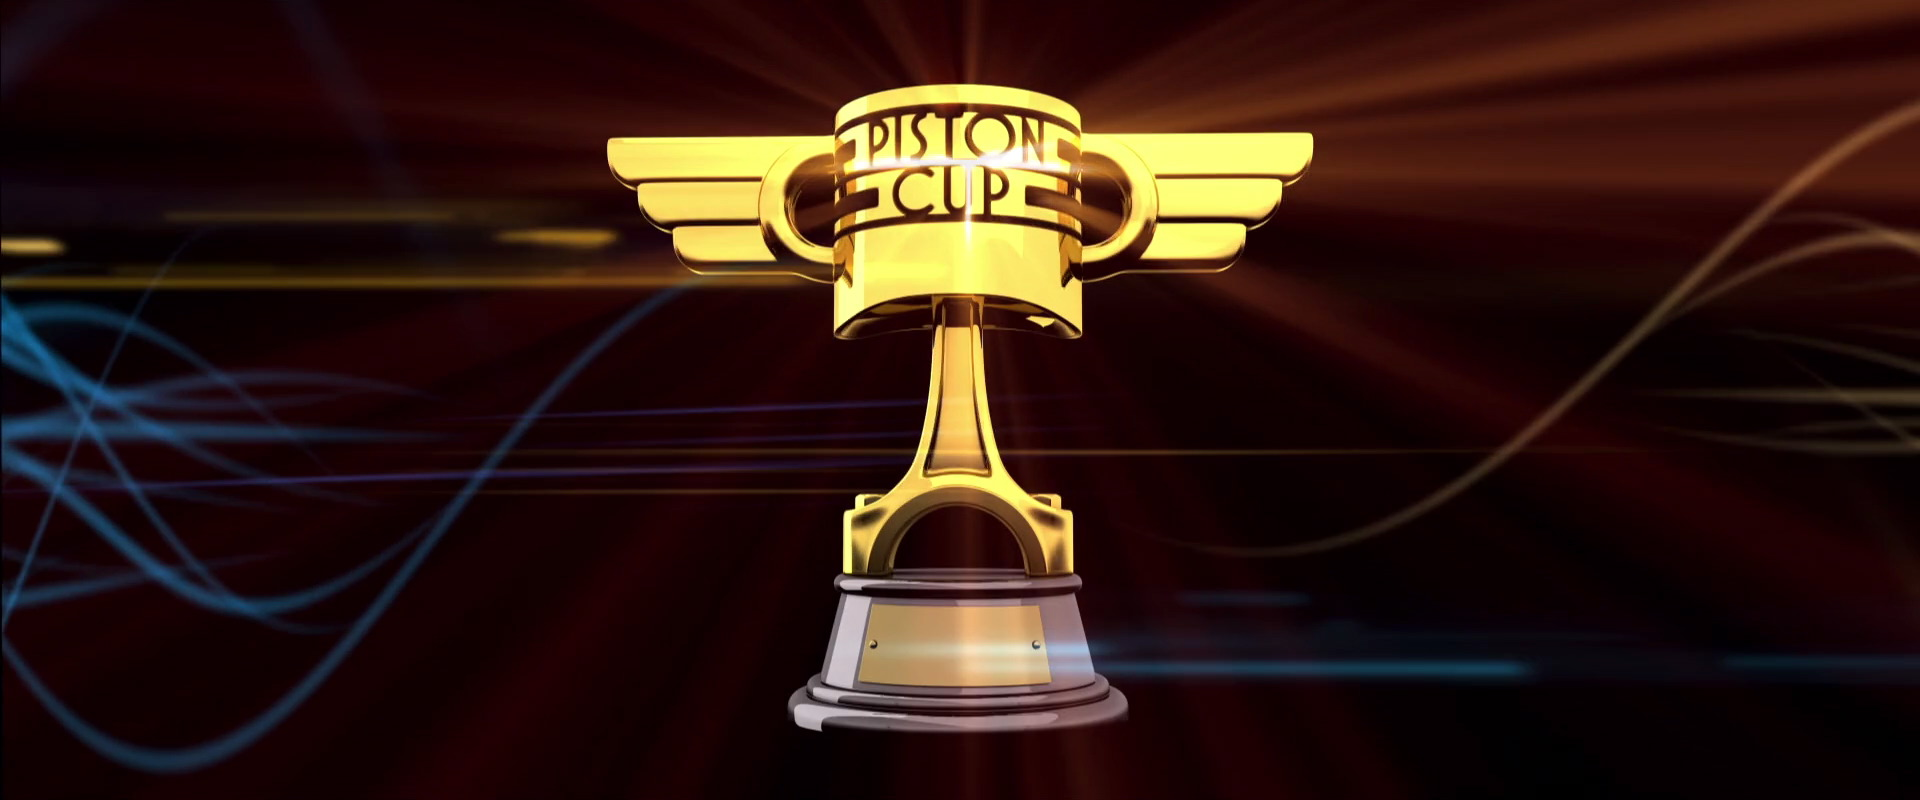 Piston Cup Trophy World Of Cars Wiki FANDOM Powered By Wikia - Piston car show trophies